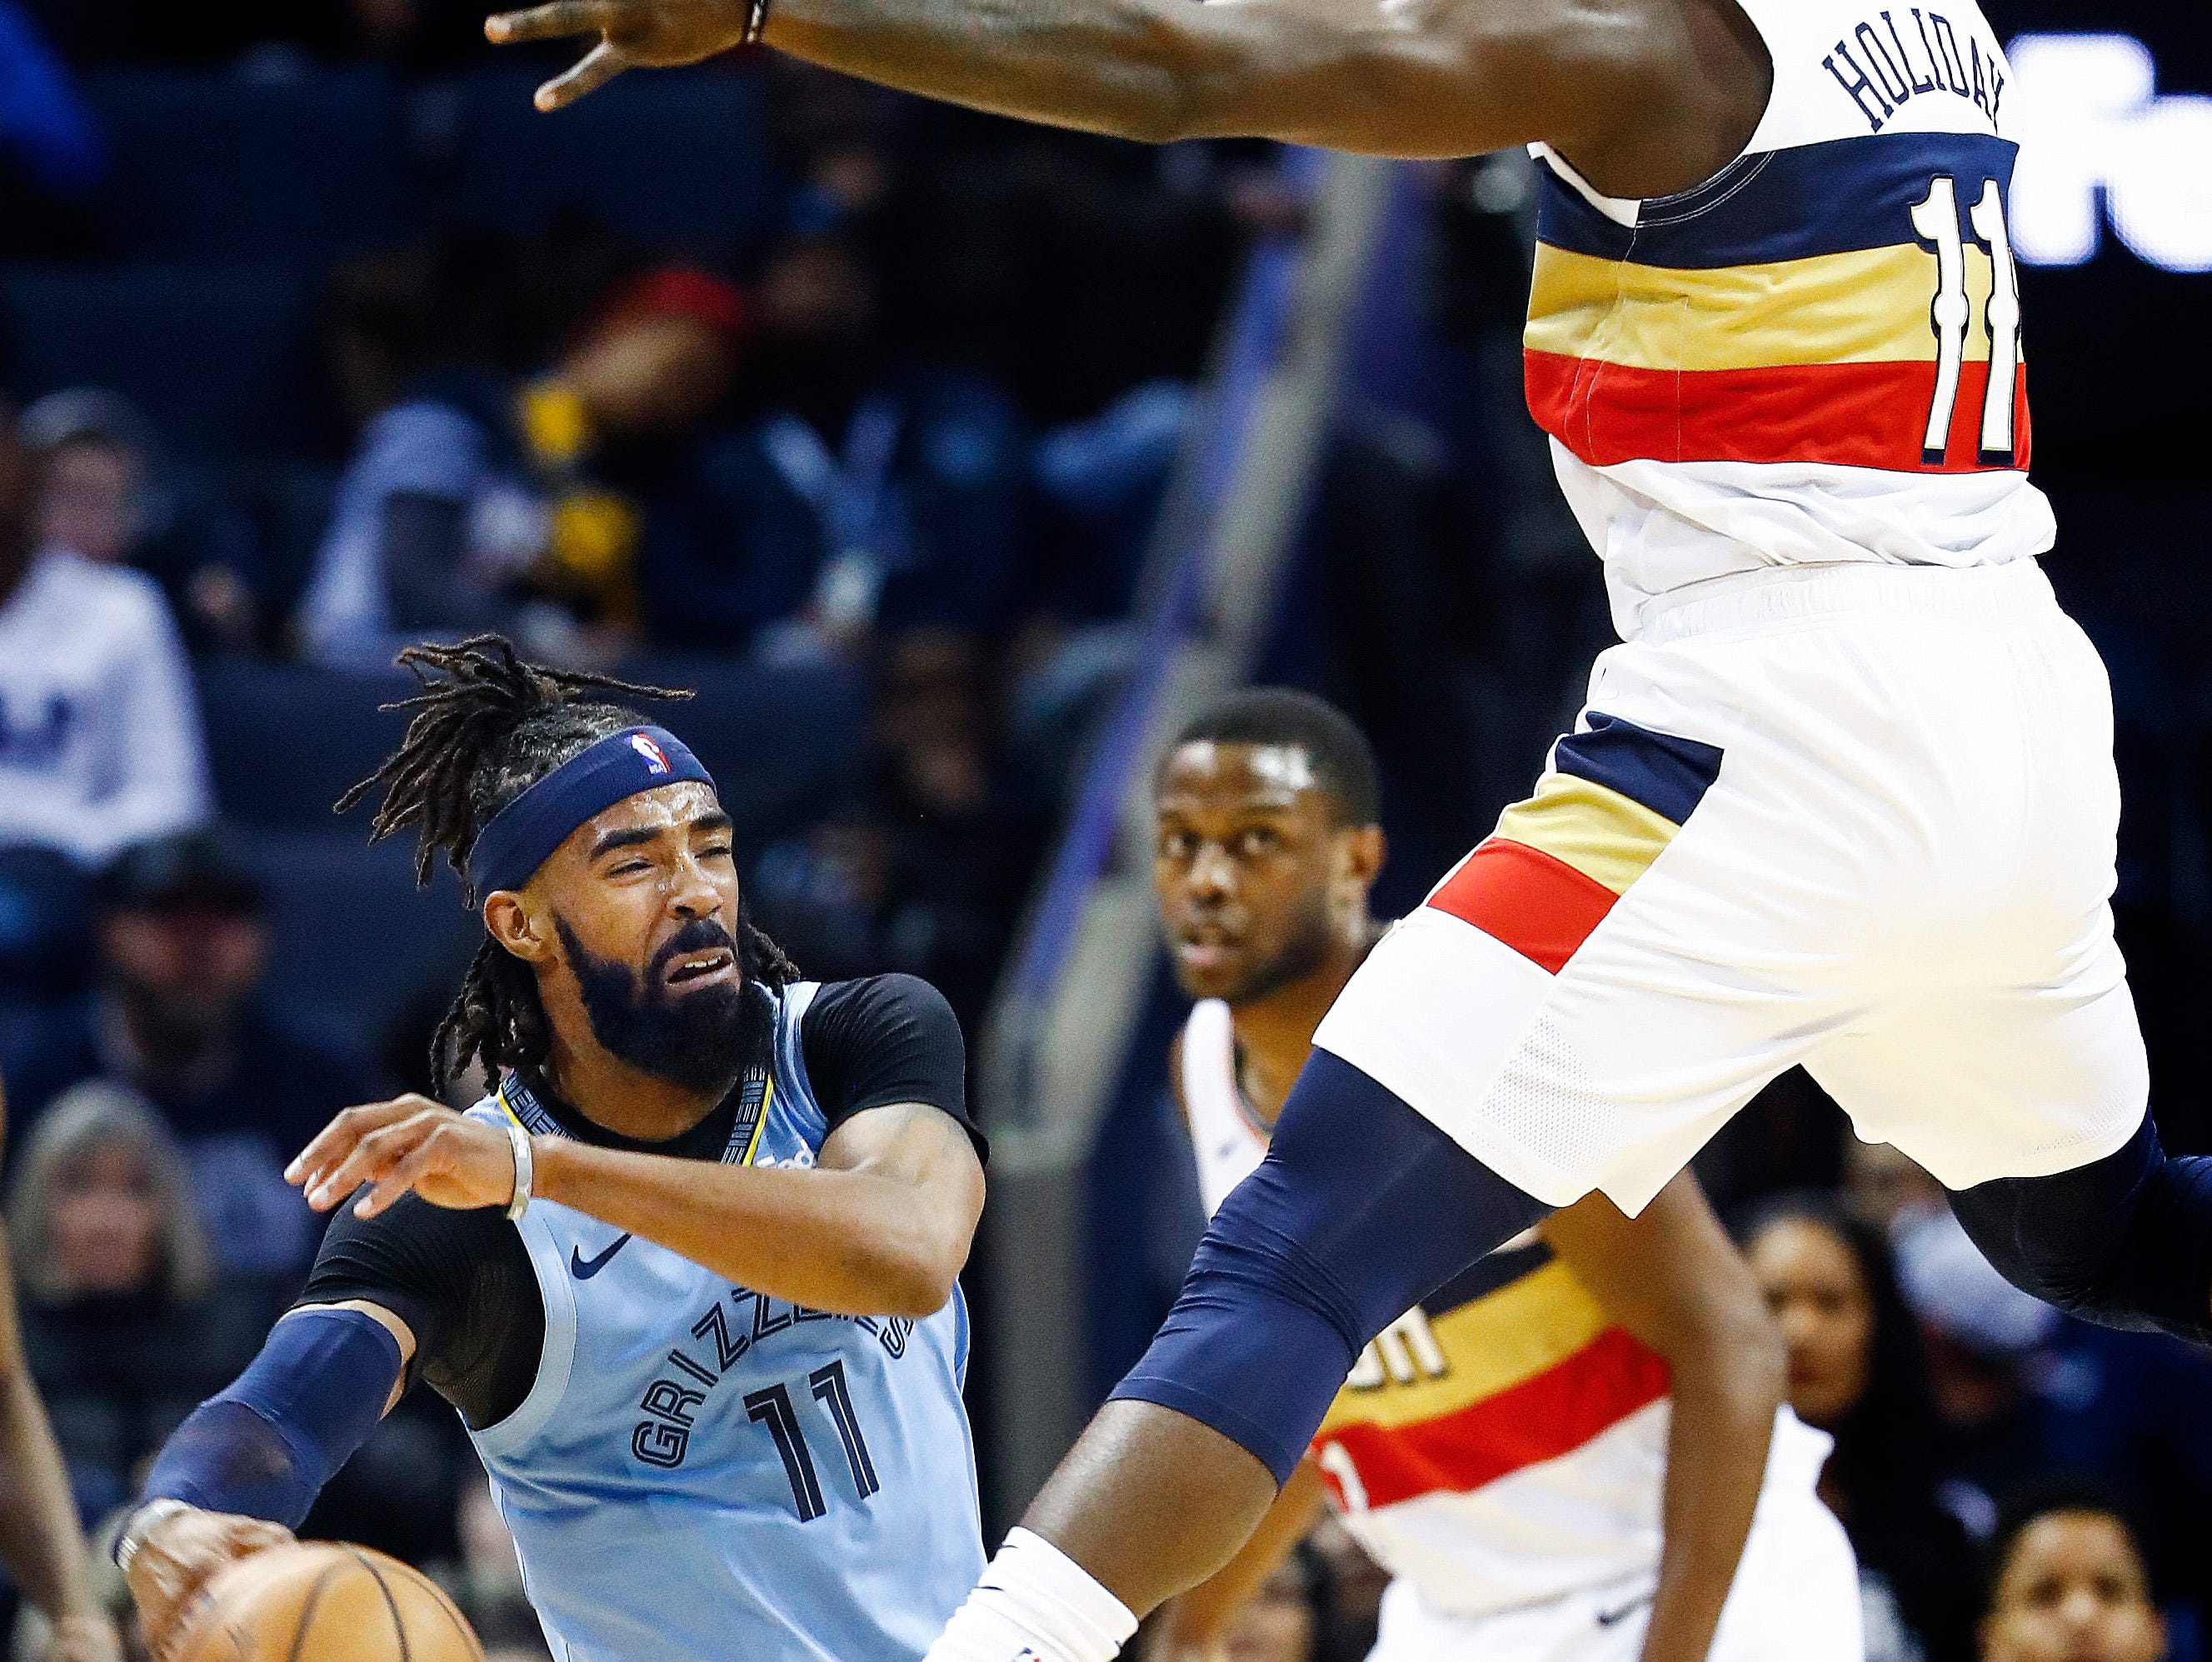 Memphis Grizzlies guard Mike Conley (left) tries to make a pass around New Orleans Pelicans defender Jrue Holiday (right) during action at the FedExForum in Memphis, Tenn., Monday, January 21, 2019.